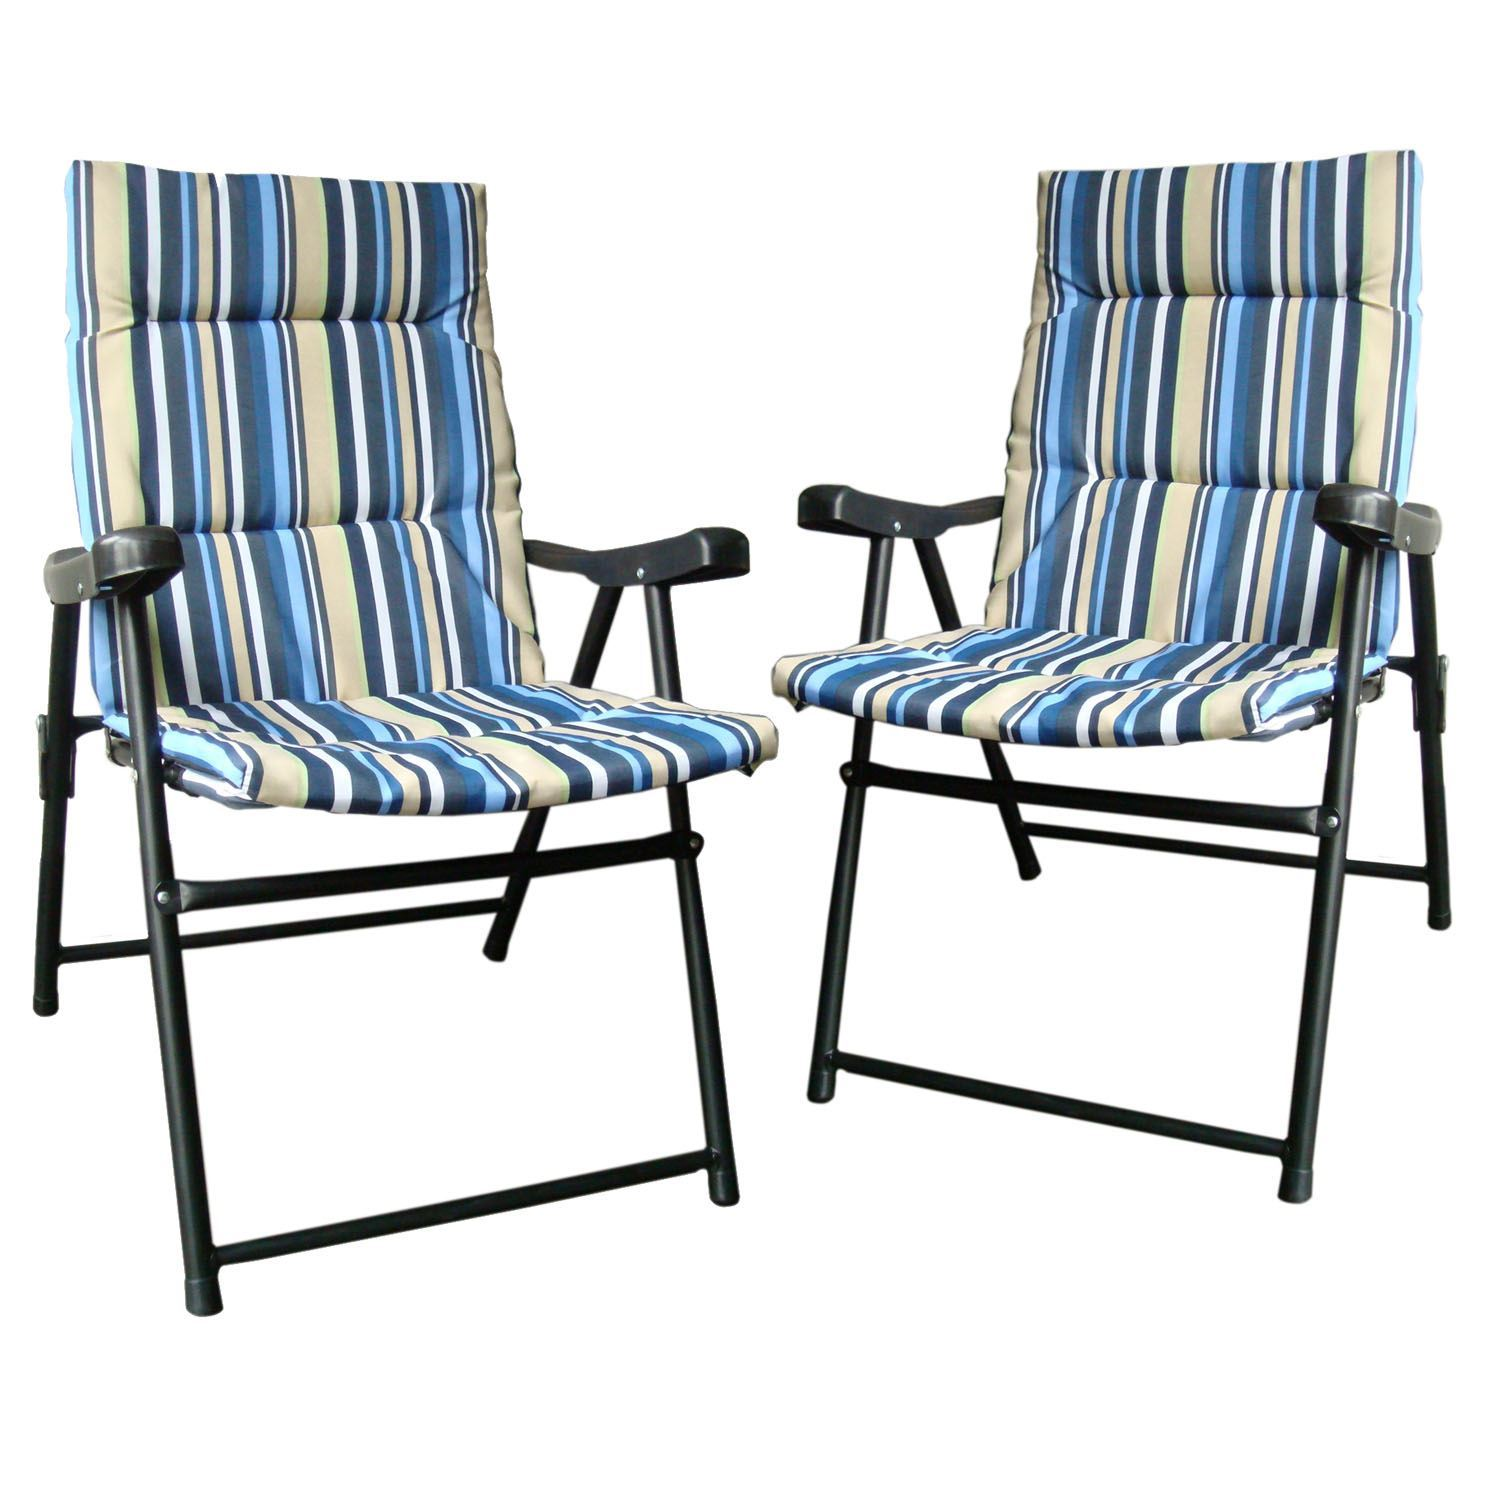 Picnic Chair Set Of 2 Padded Folding Outdoor Garden Camping Picnic